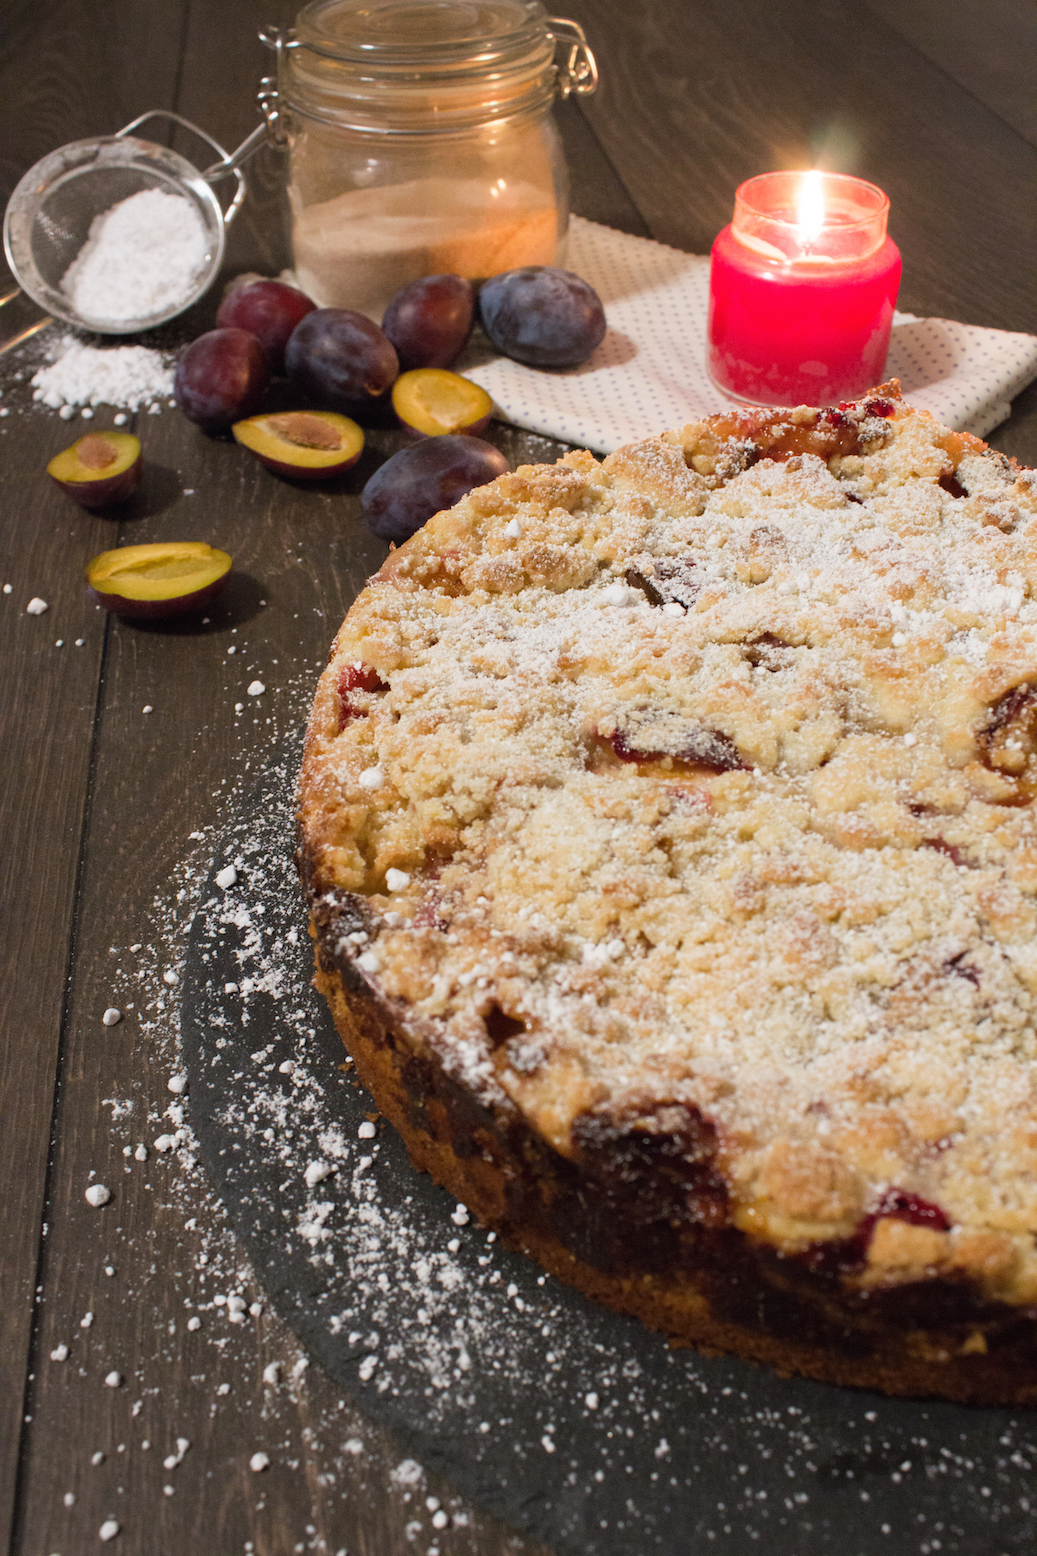 family bakery more vanille pflaumenkuchen mit streuseln und zimt crumble vanilla plum cake. Black Bedroom Furniture Sets. Home Design Ideas